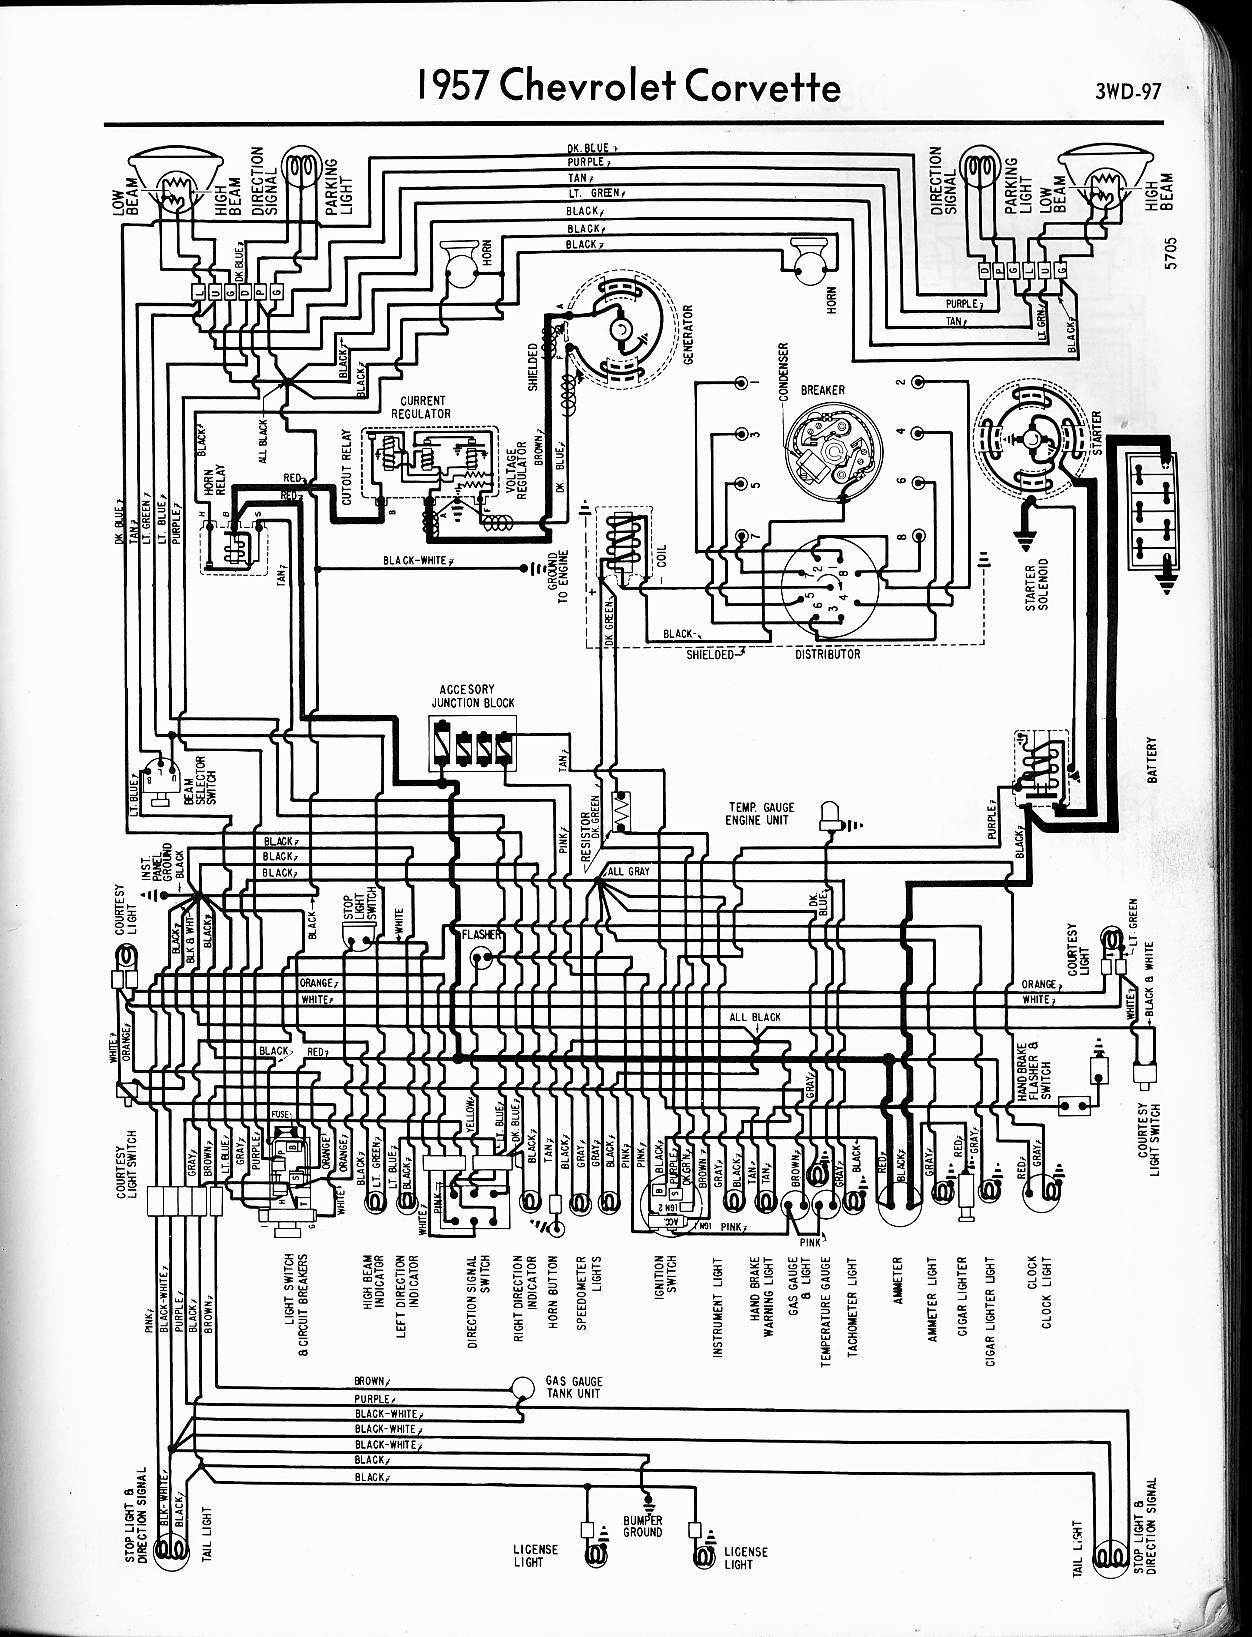 MWireChev57_3WD 097 57 65 chevy wiring diagrams 1957 chevrolet wiring diagram at gsmx.co